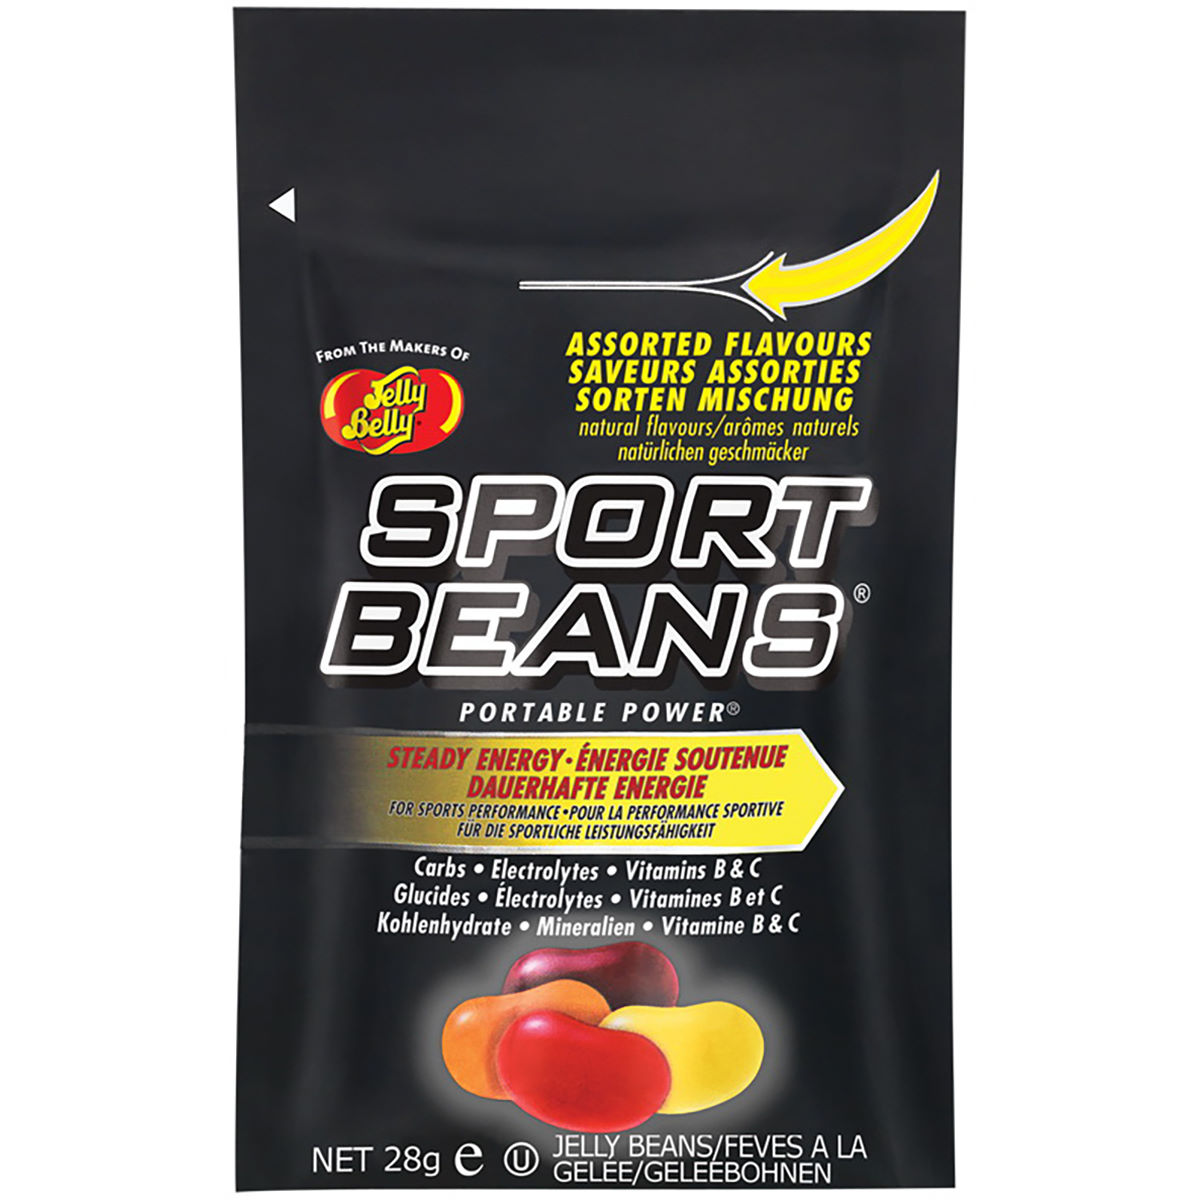 Cápsulas Jelly Bean Sports Beans 5 x 28 g - Masticables